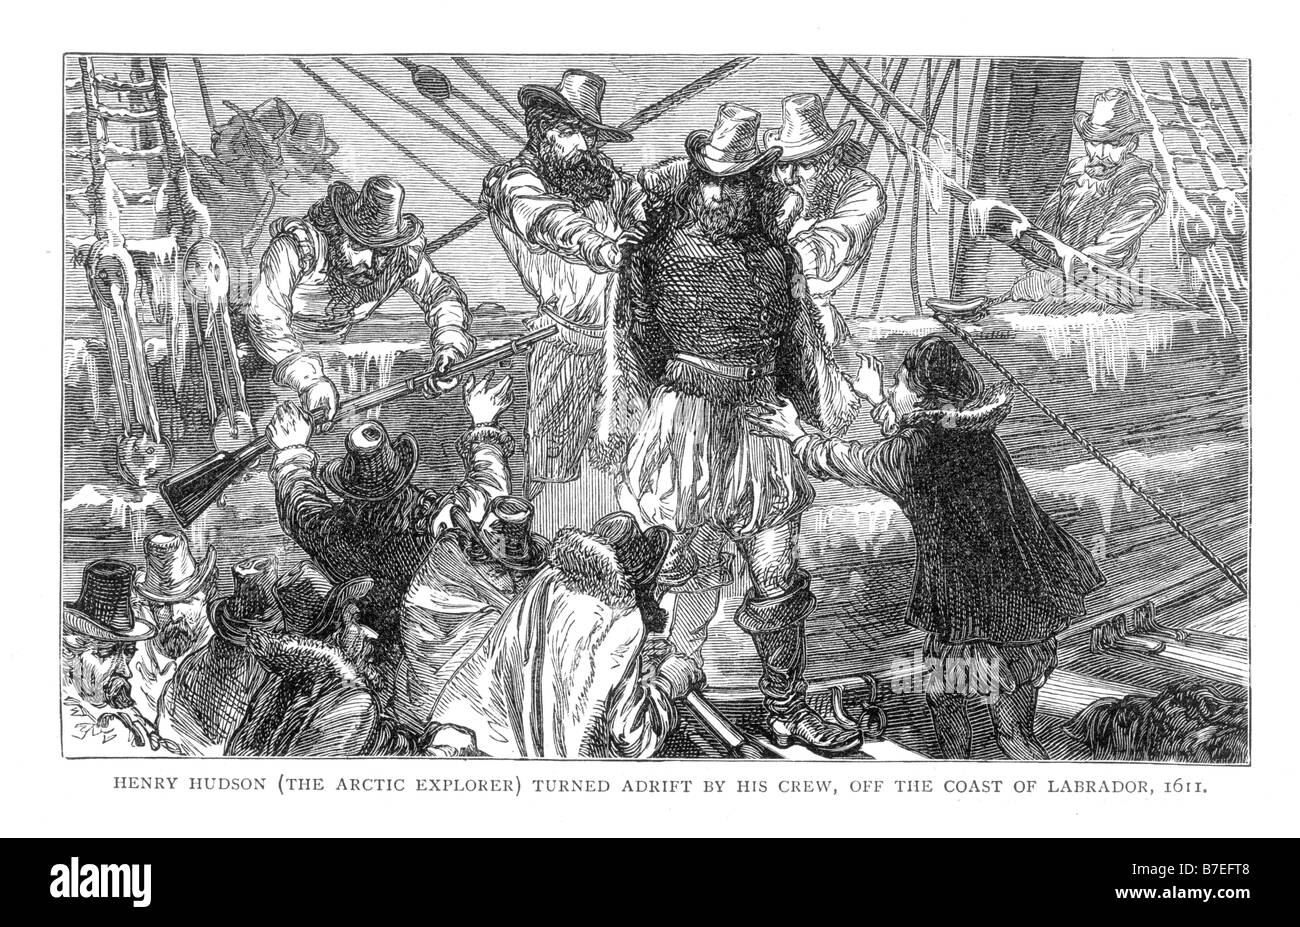 Henry Hudson the Arctic Explorer Turned Adrift by his Crew off the Coast of Labrador 1611 19th Century Illustration - Stock Image